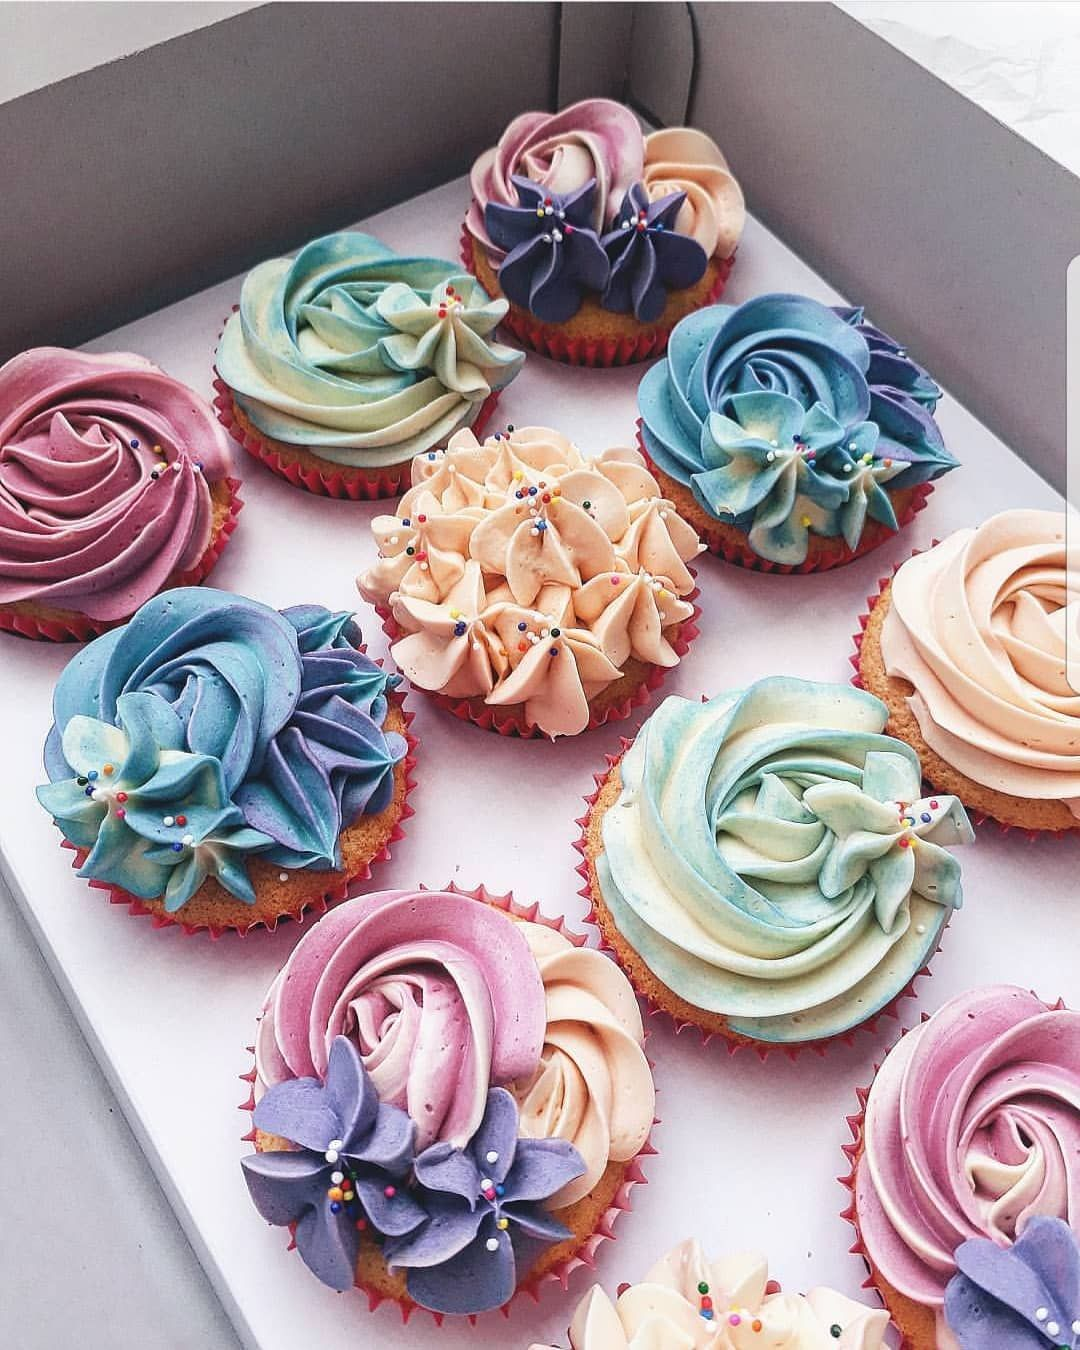 Flower Wedding Cupcake Ideas: 287.5k Followers, 355 Following, 1,531 Posts